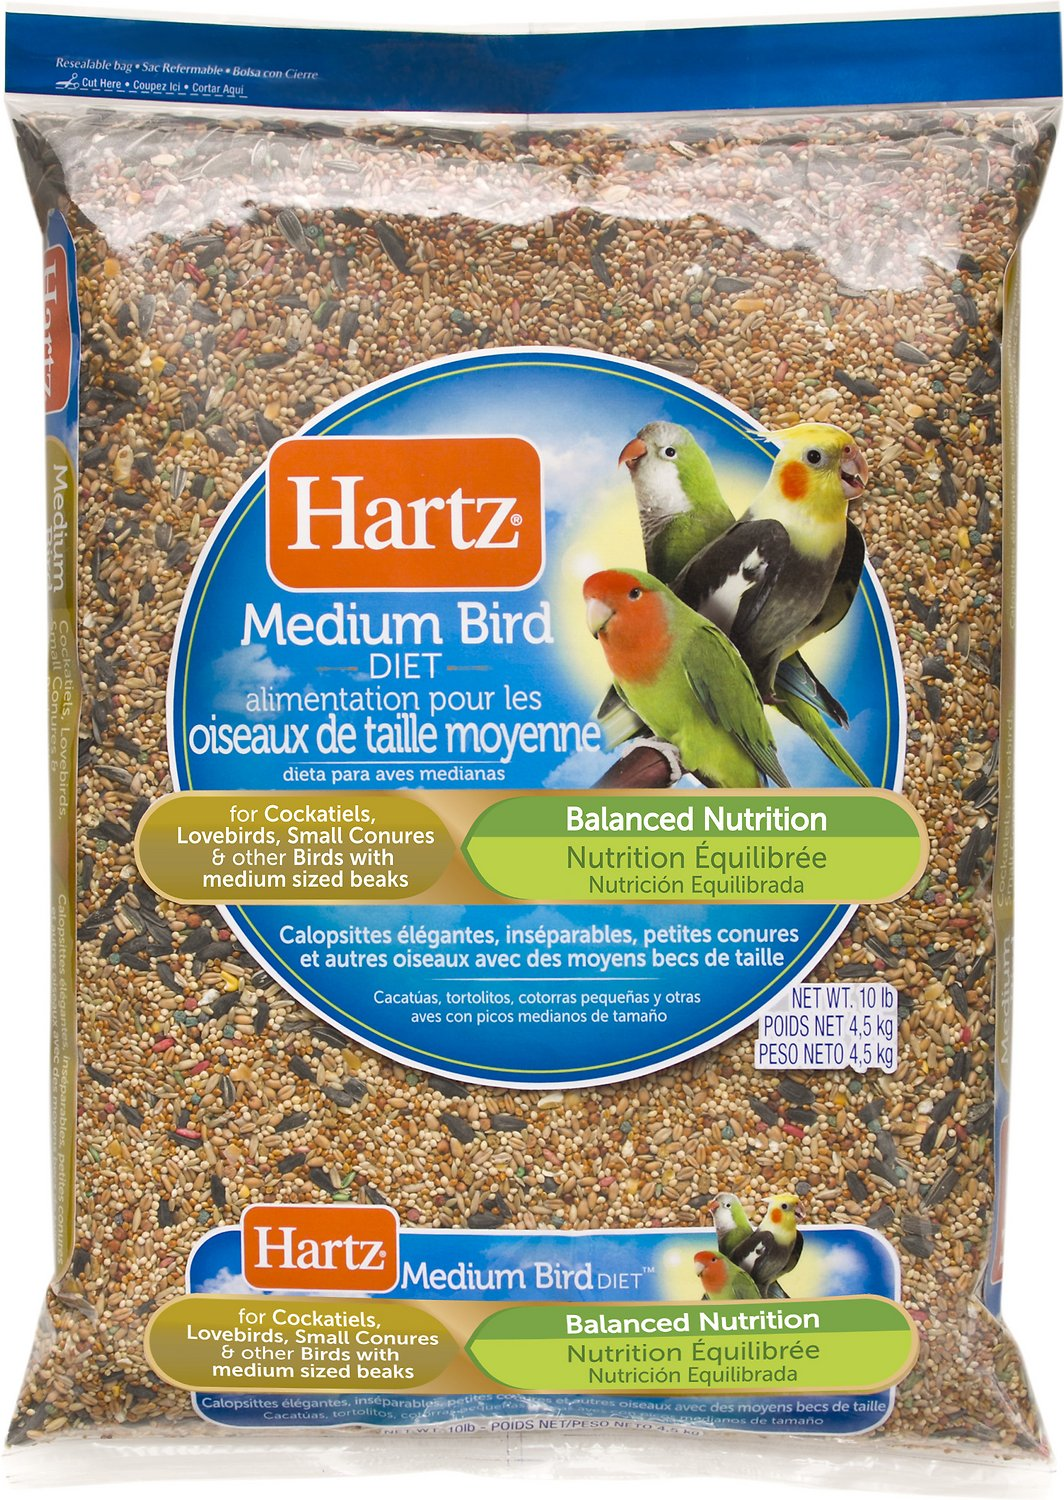 Hartz bird diet for cockatiels lovebirds small conures bird food roll over image to zoom in forumfinder Choice Image